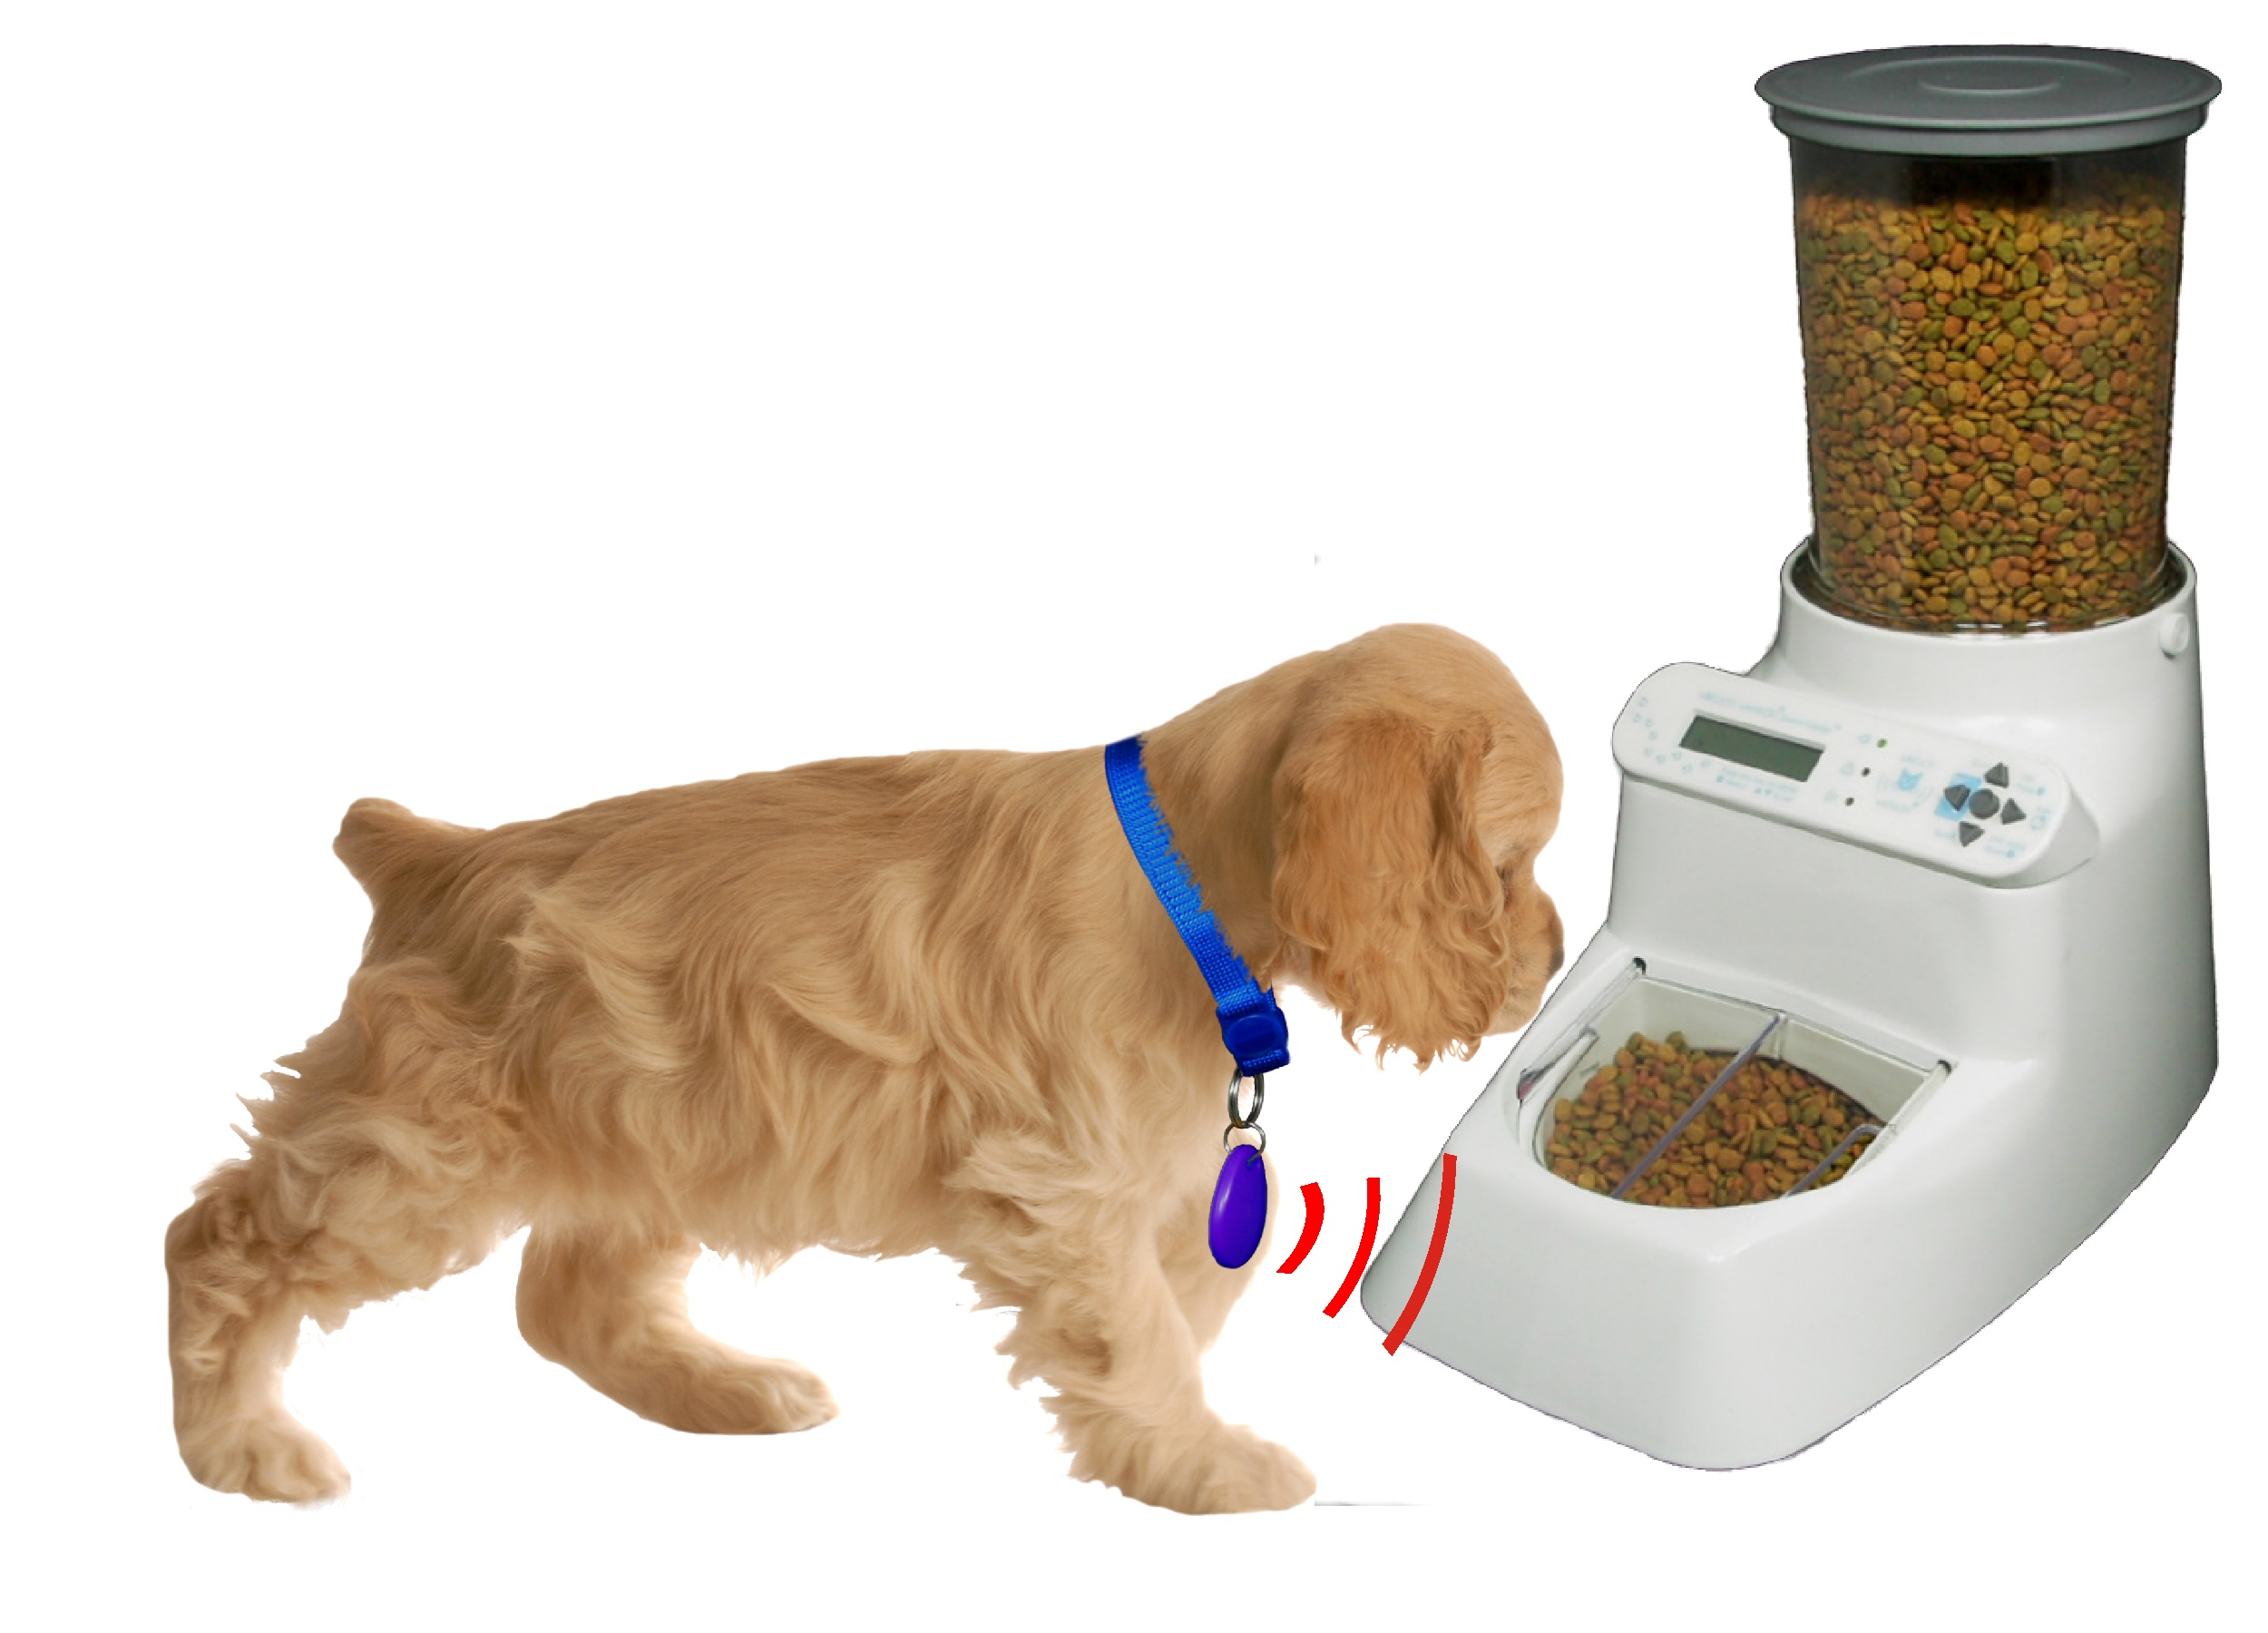 recorder feeder dog buy voice andrew and feeders day pets james with automatic image timer pet